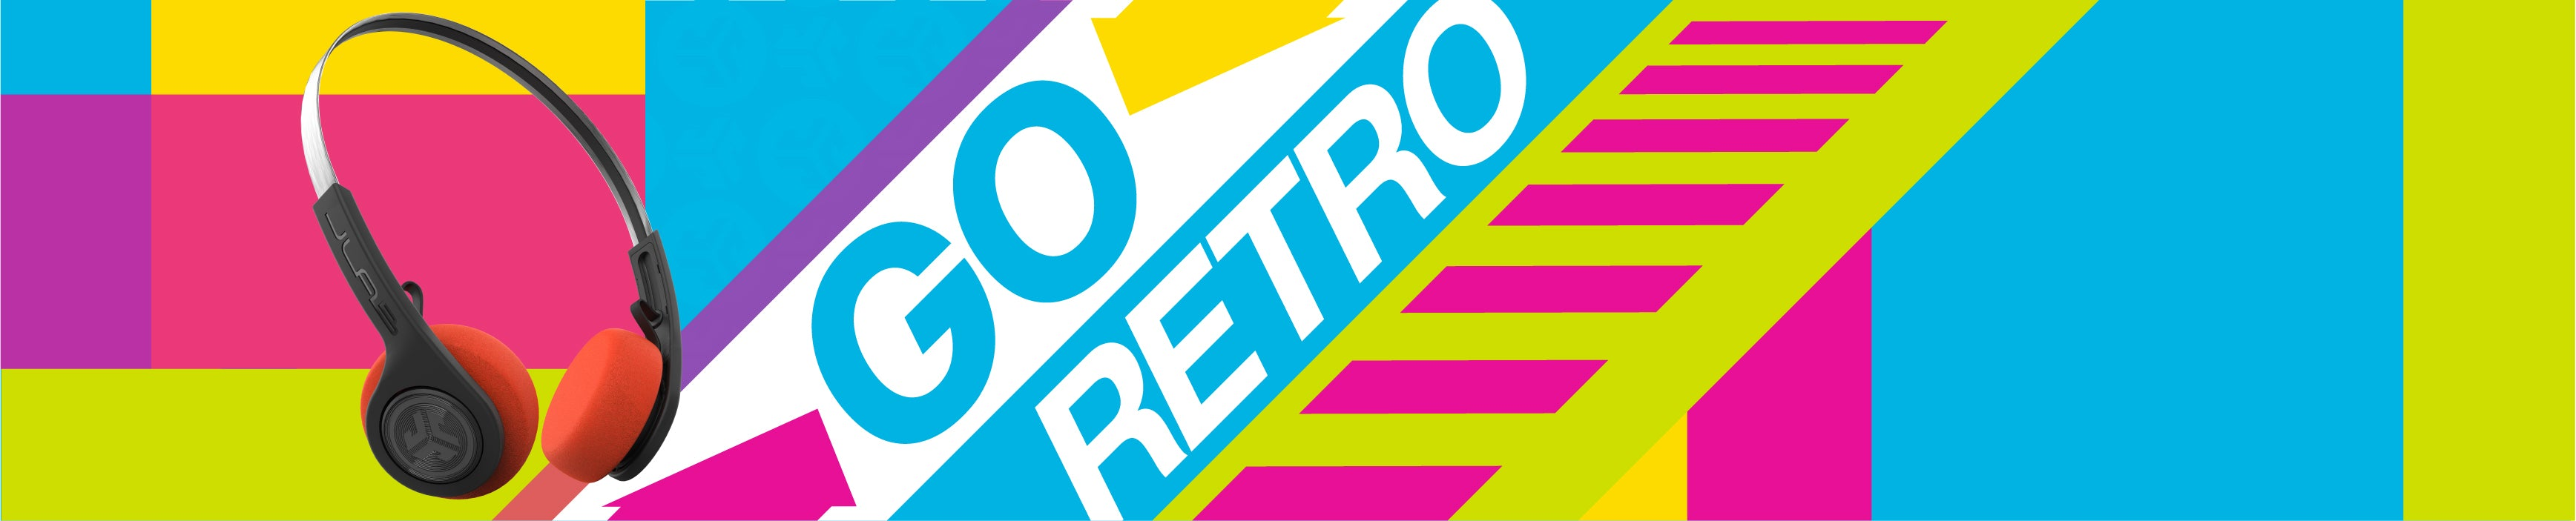 Revind Wireless Retro-hoofdtelefoon